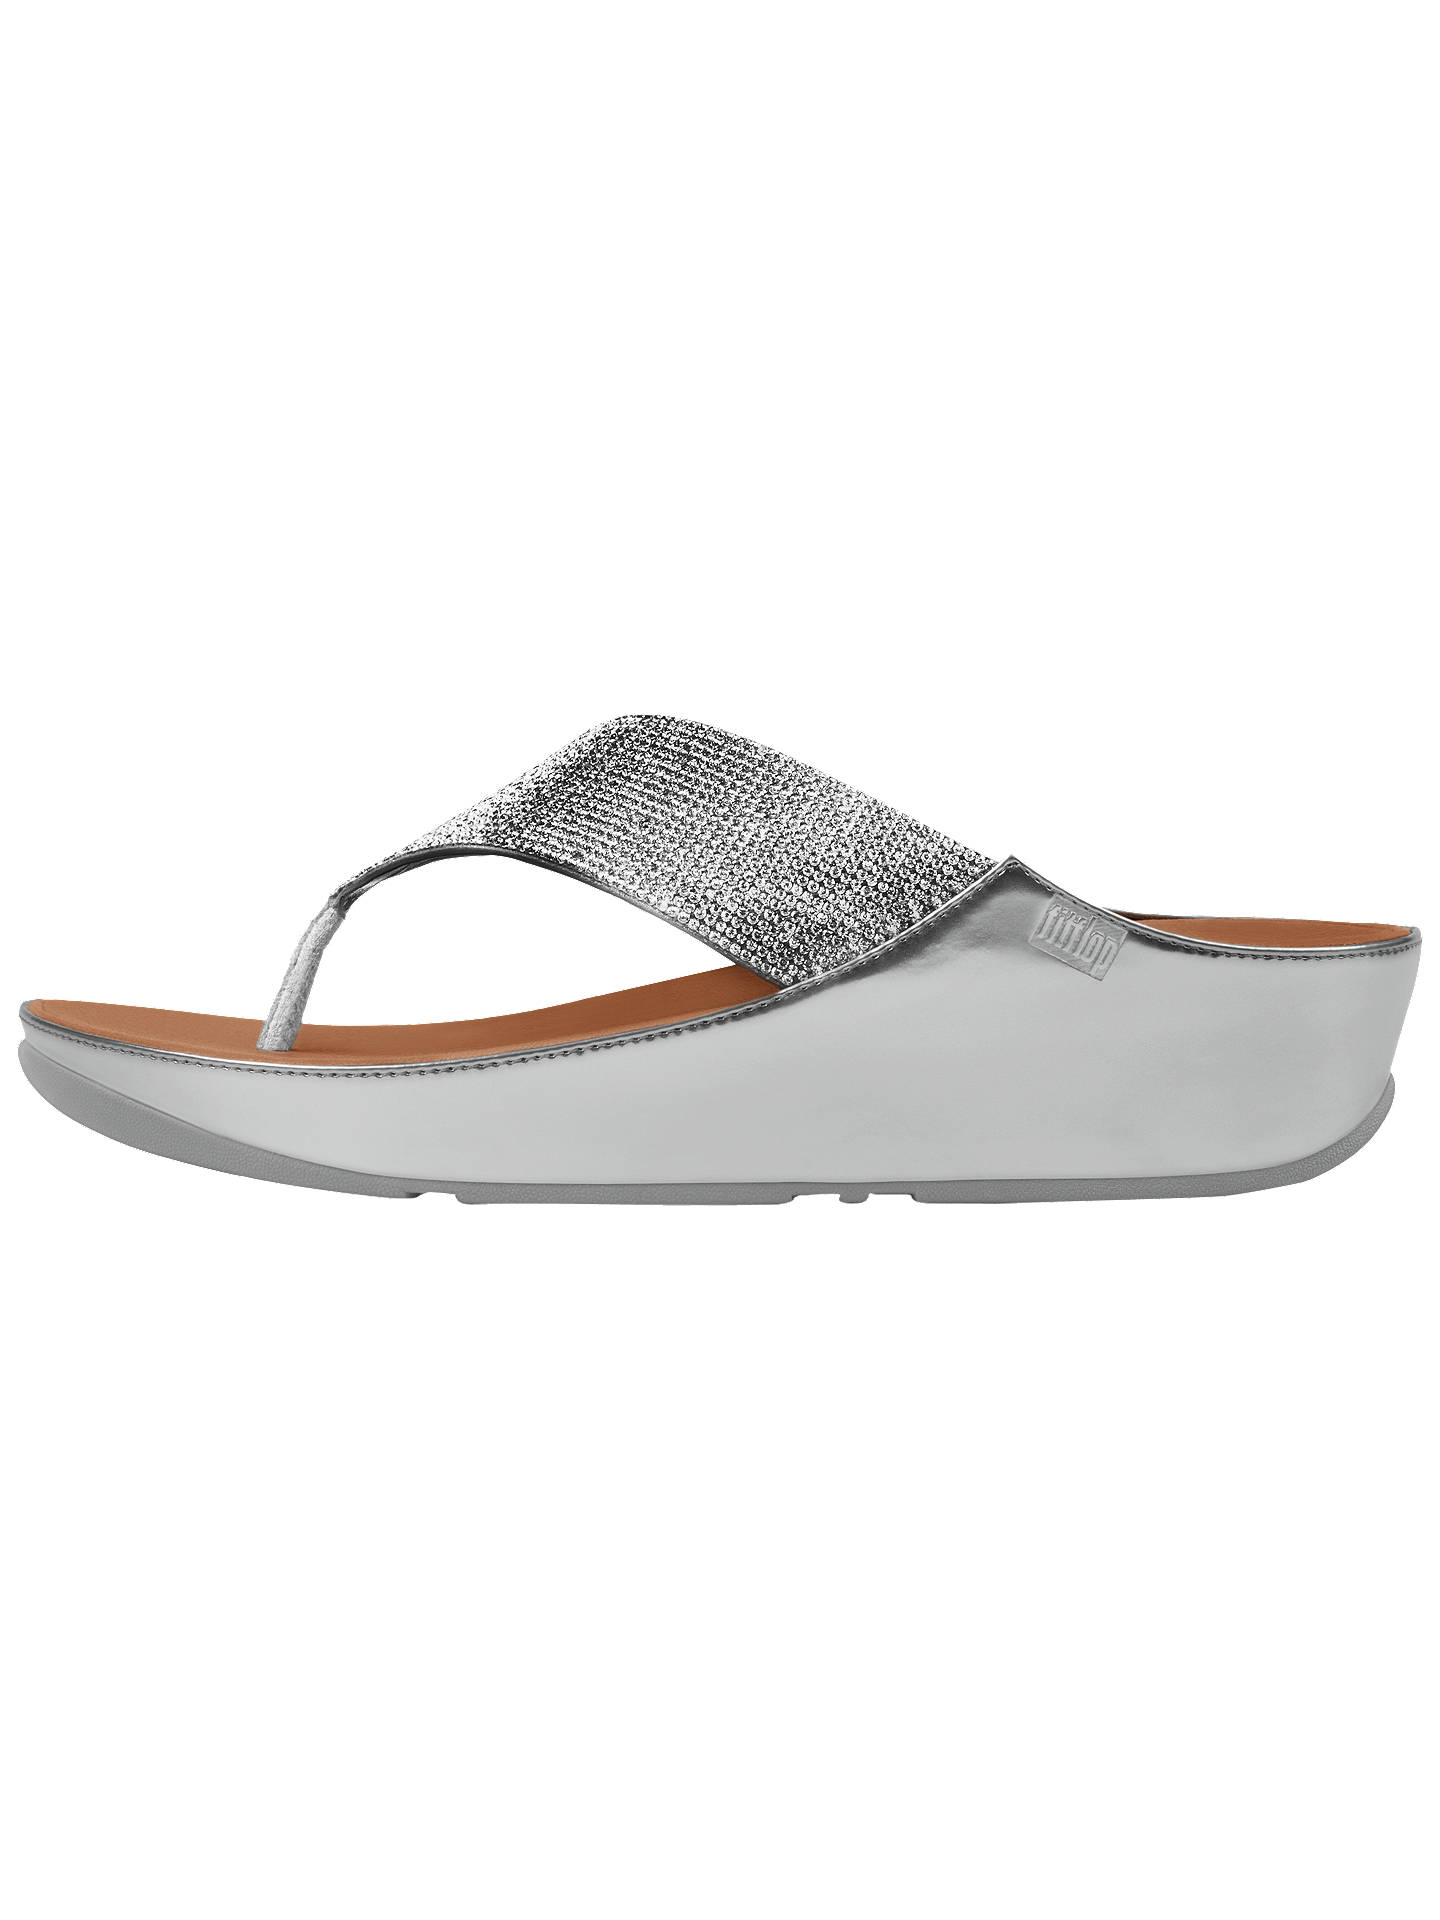 f4eabdc0e73b Buy FitFlop Crystall Toe Post Sandals